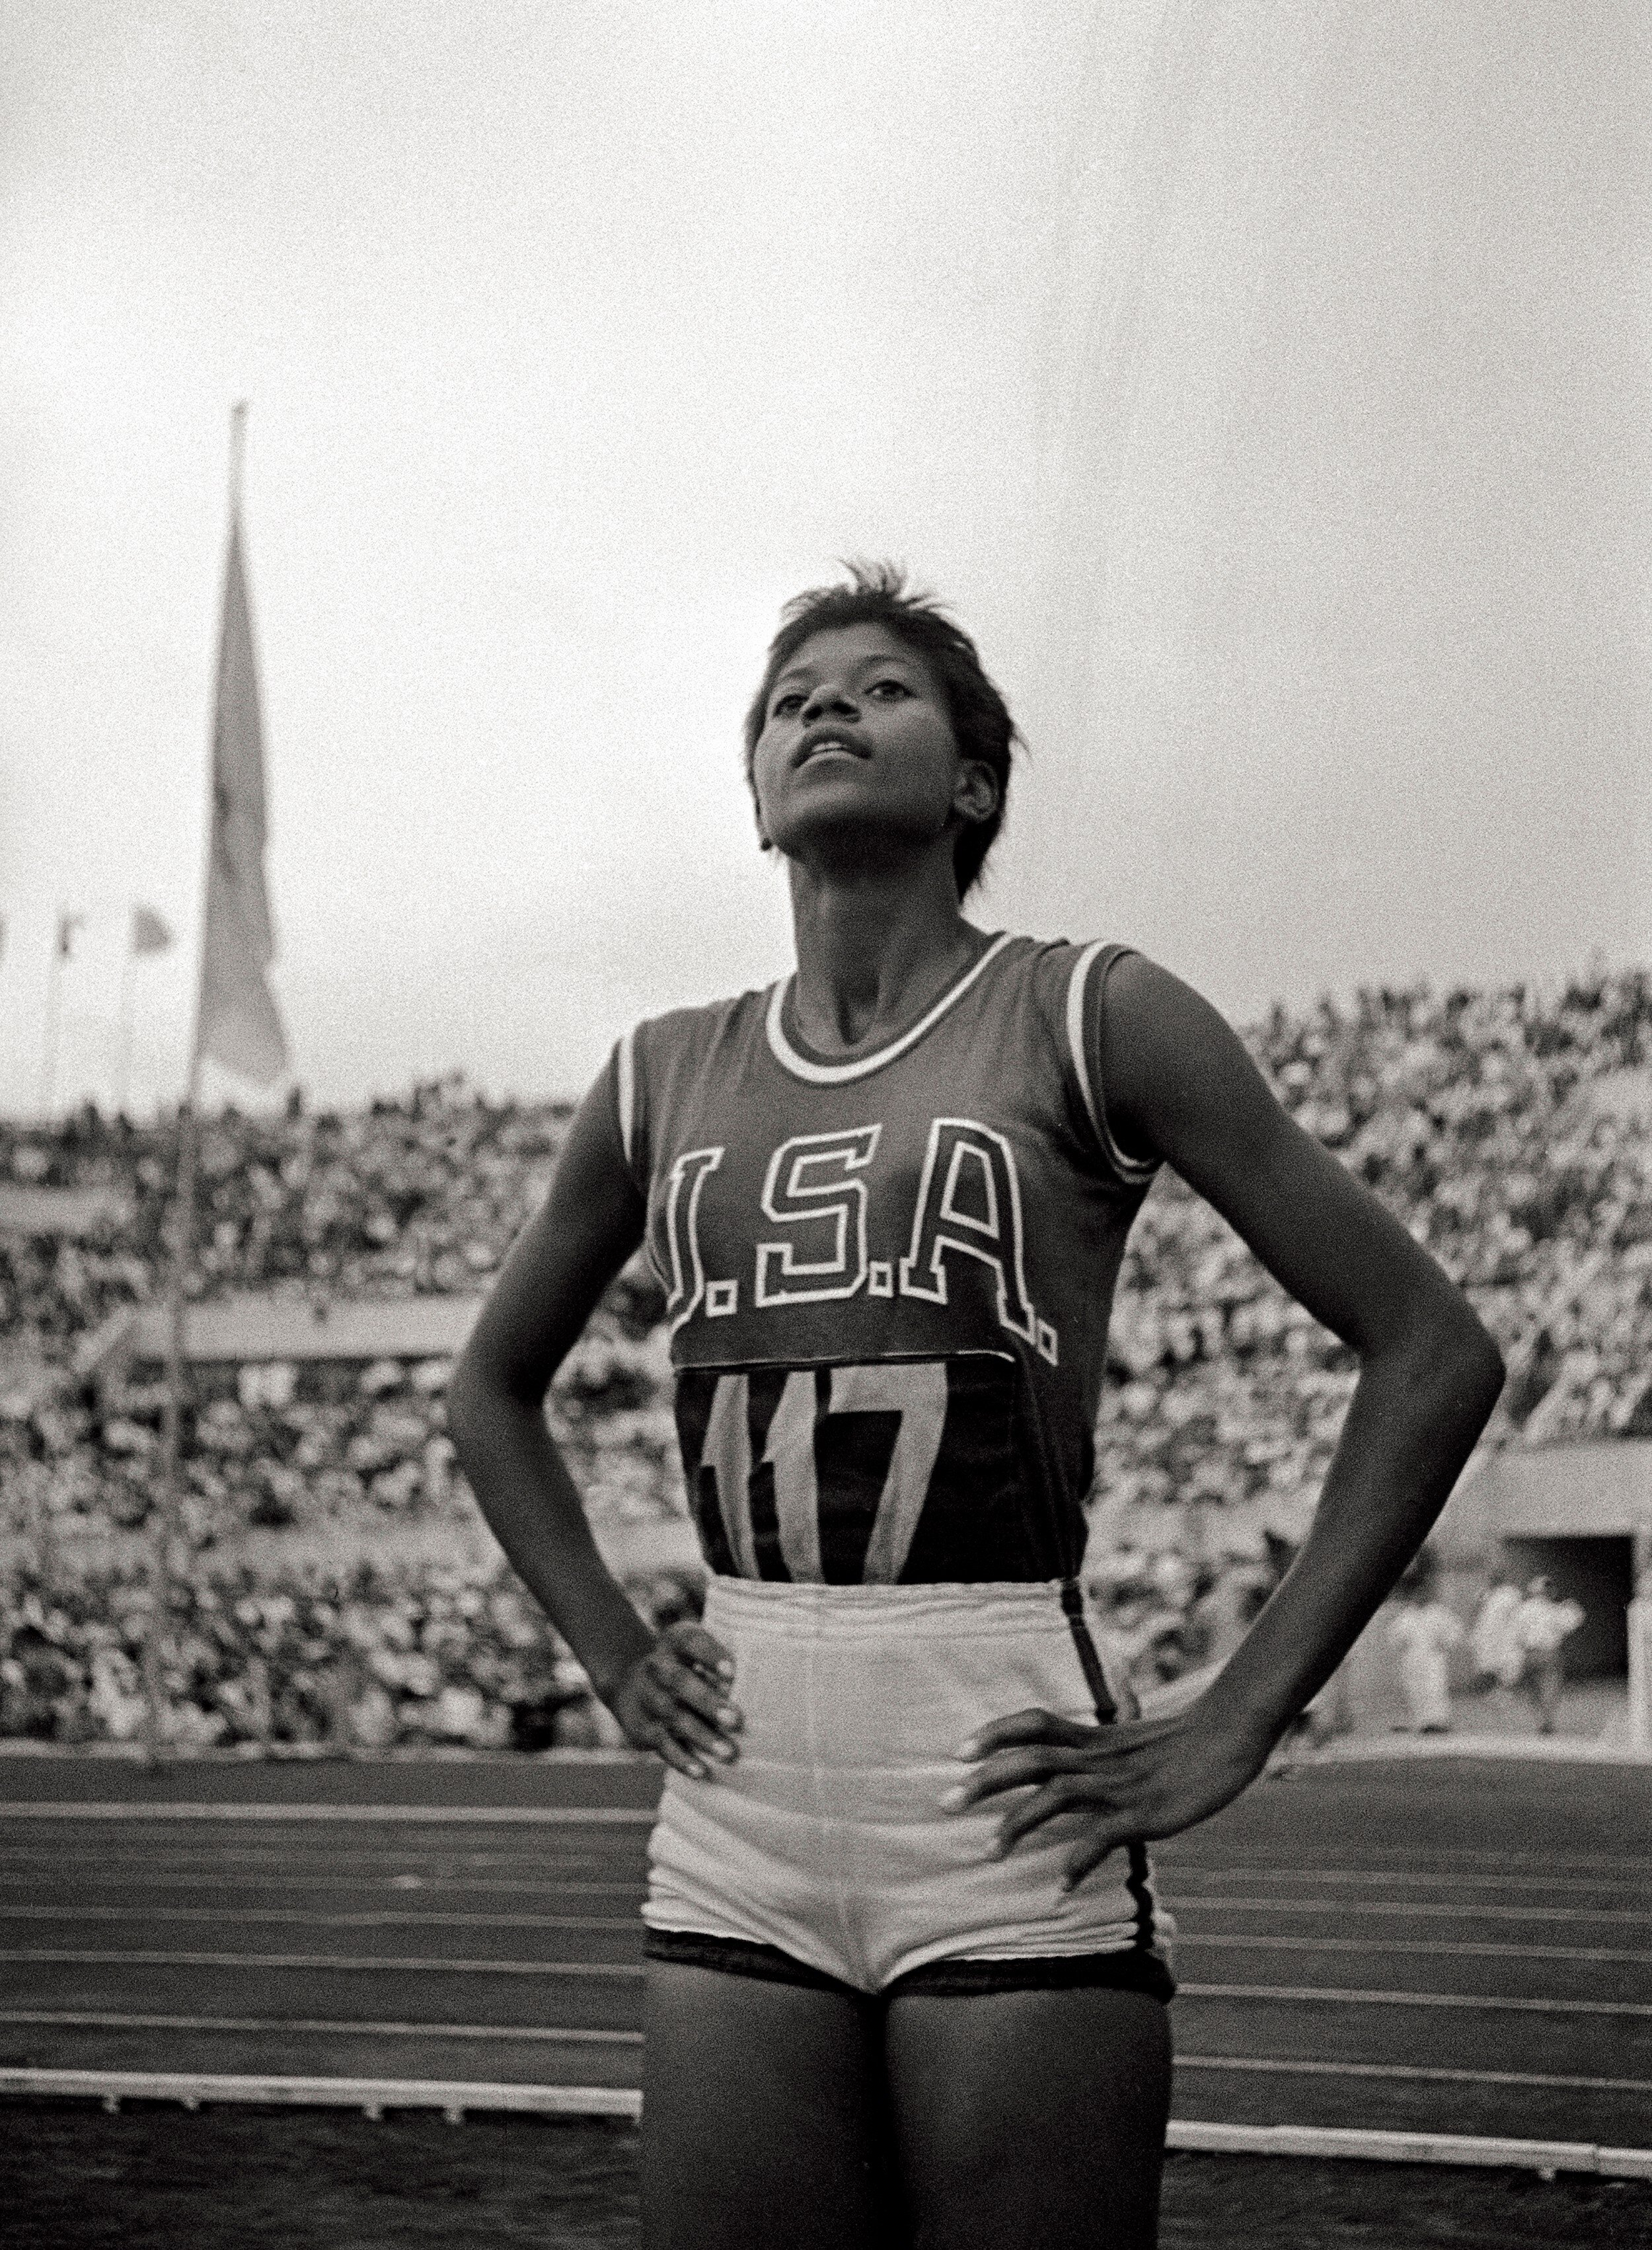 Wilma Rudolph standing with hands on hips